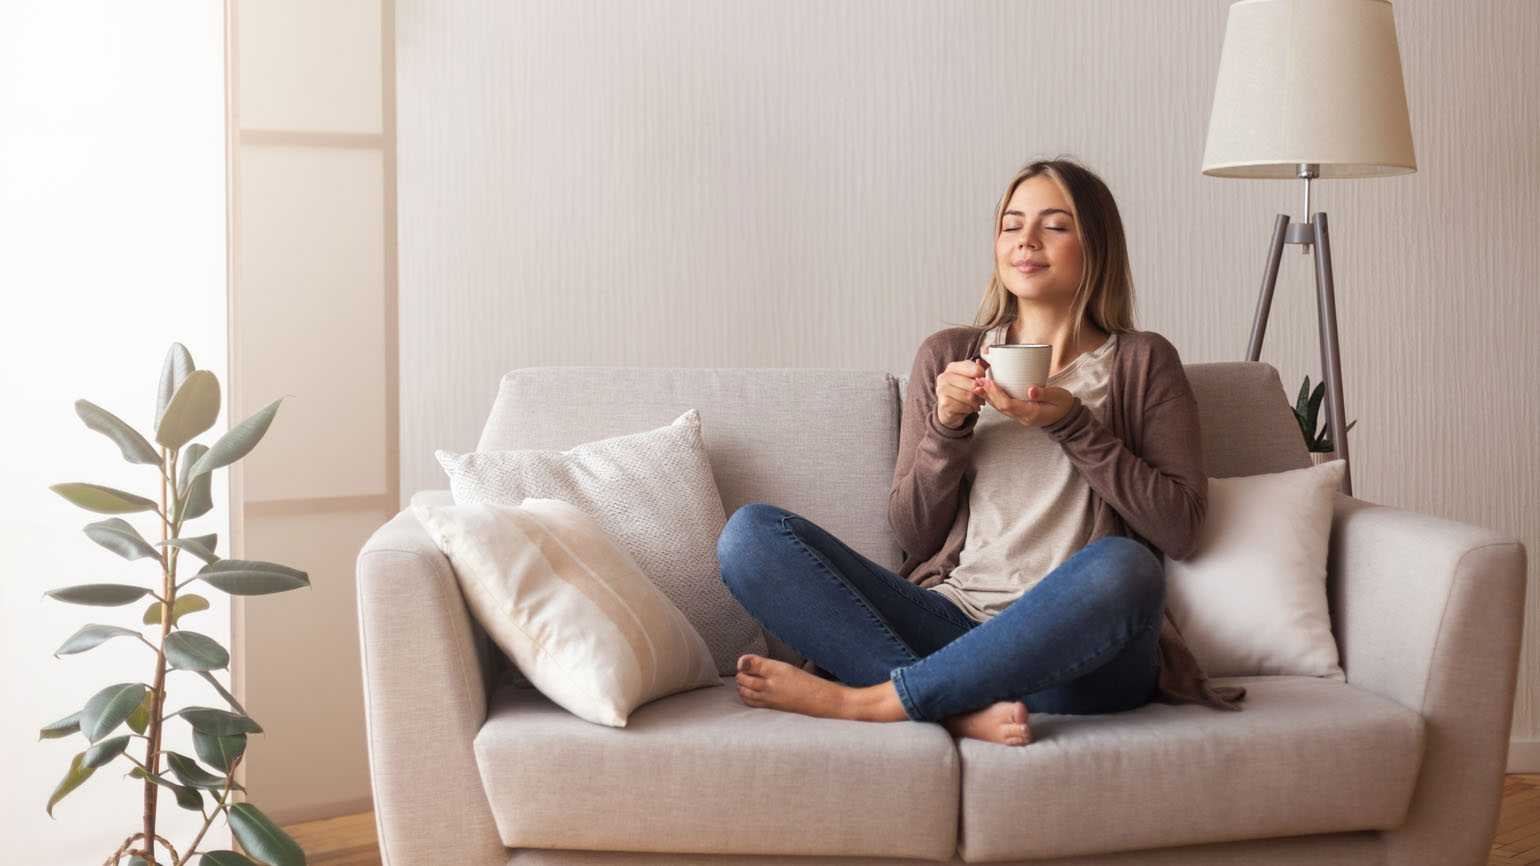 A woman finding peace on her couch; Getty Images